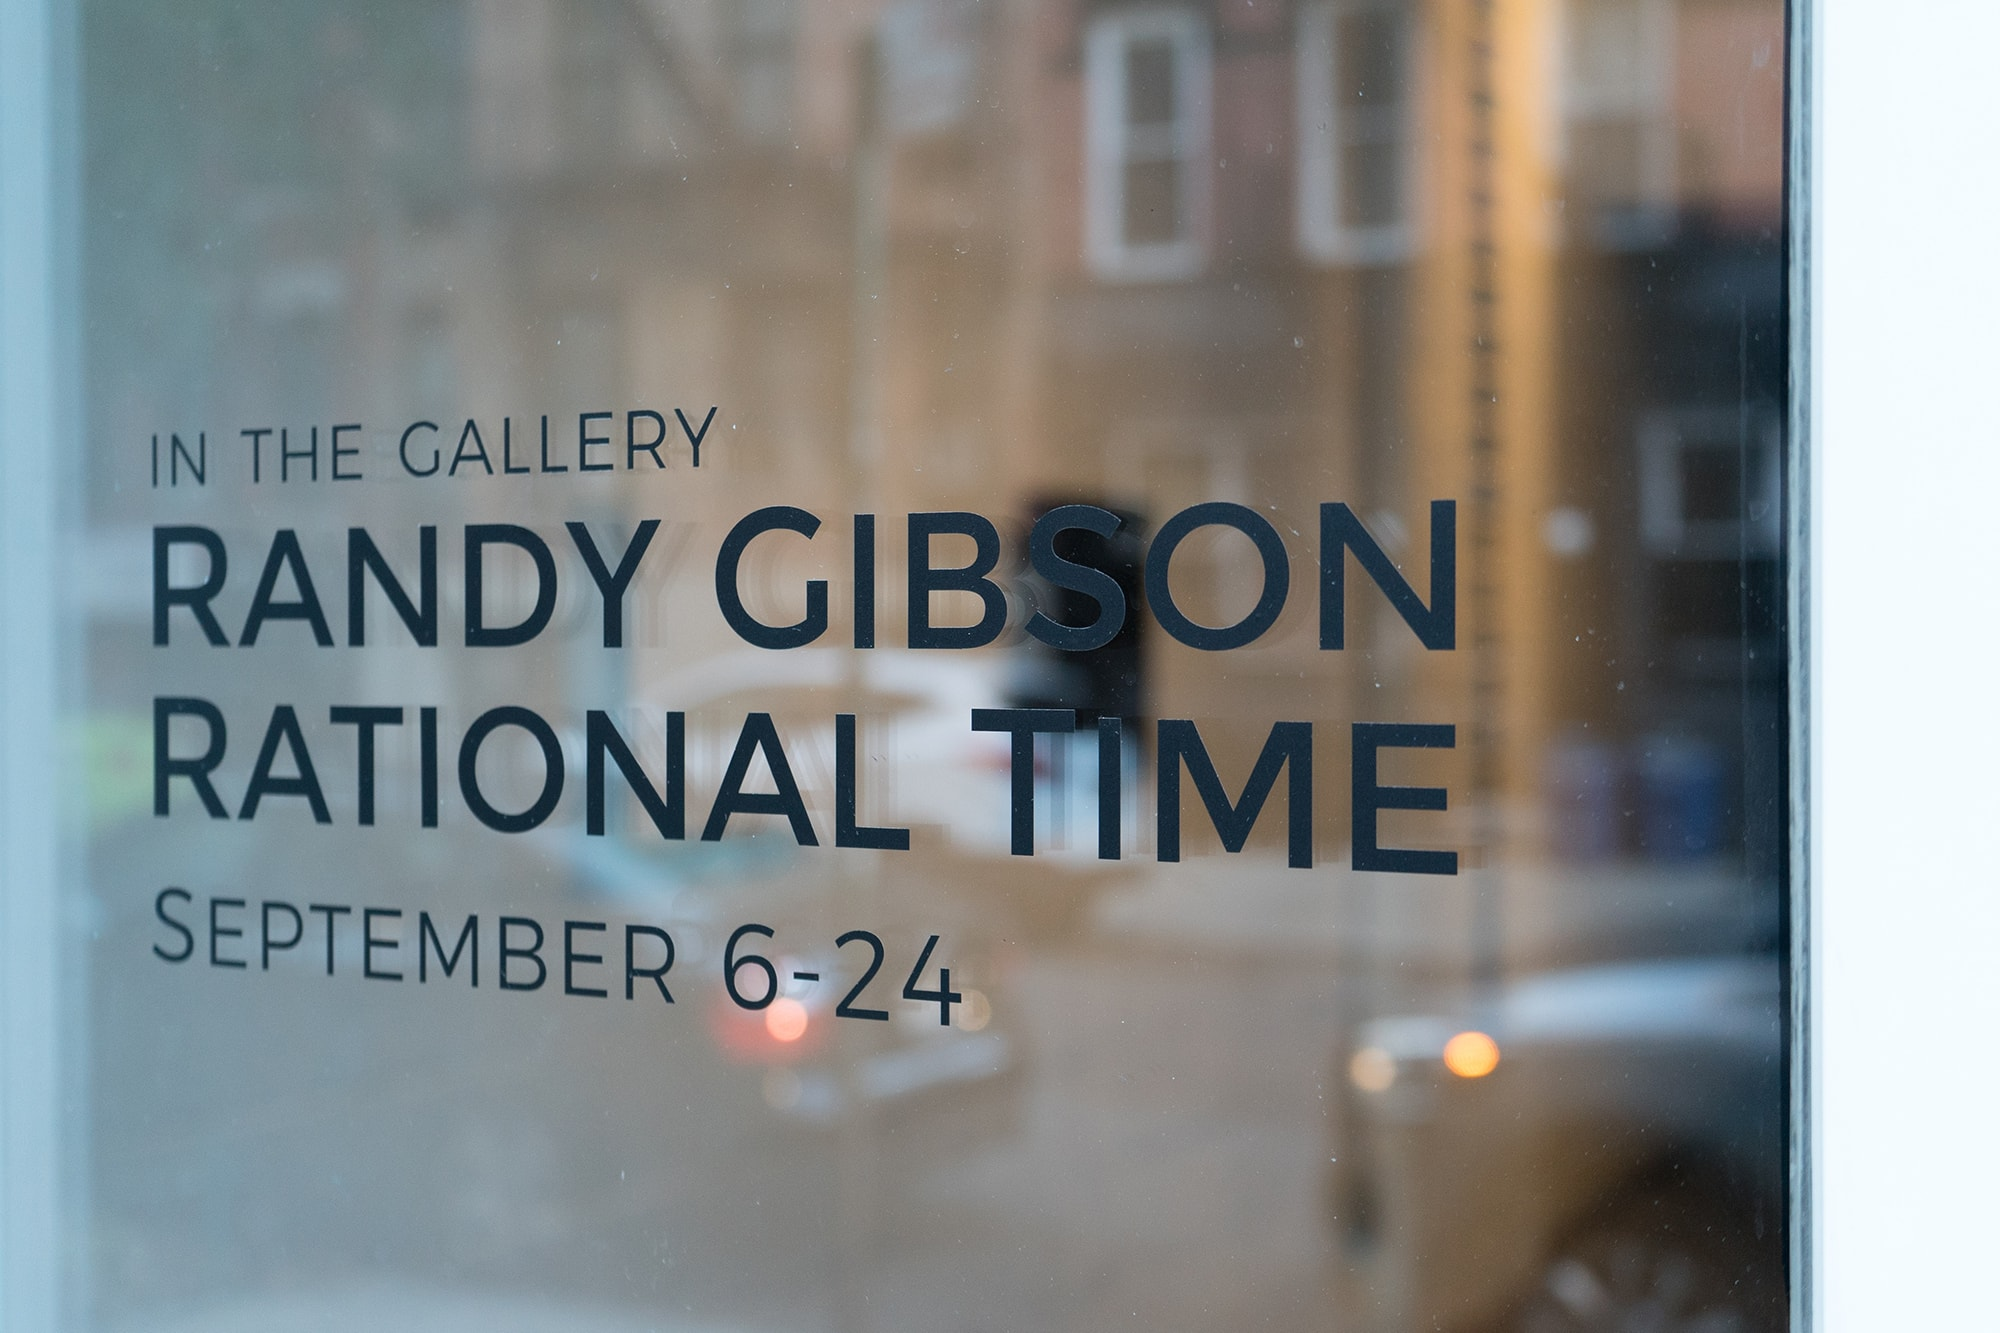 Randy Gibson's solo show <em>Rational Time</em> at the Wild Project Gallery, NYC